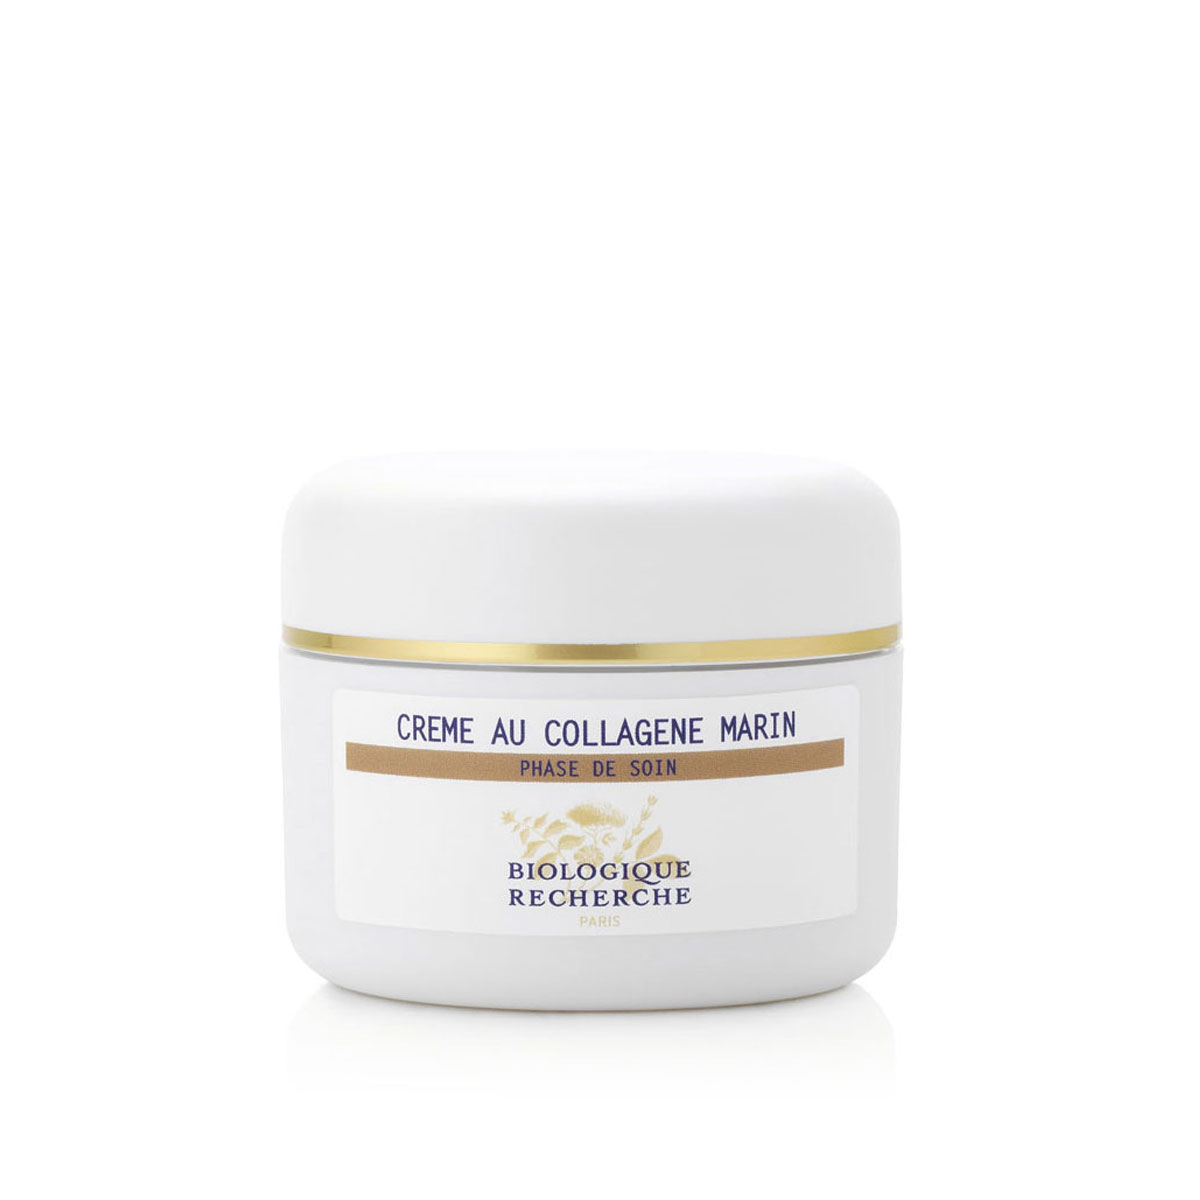 creme au collagene